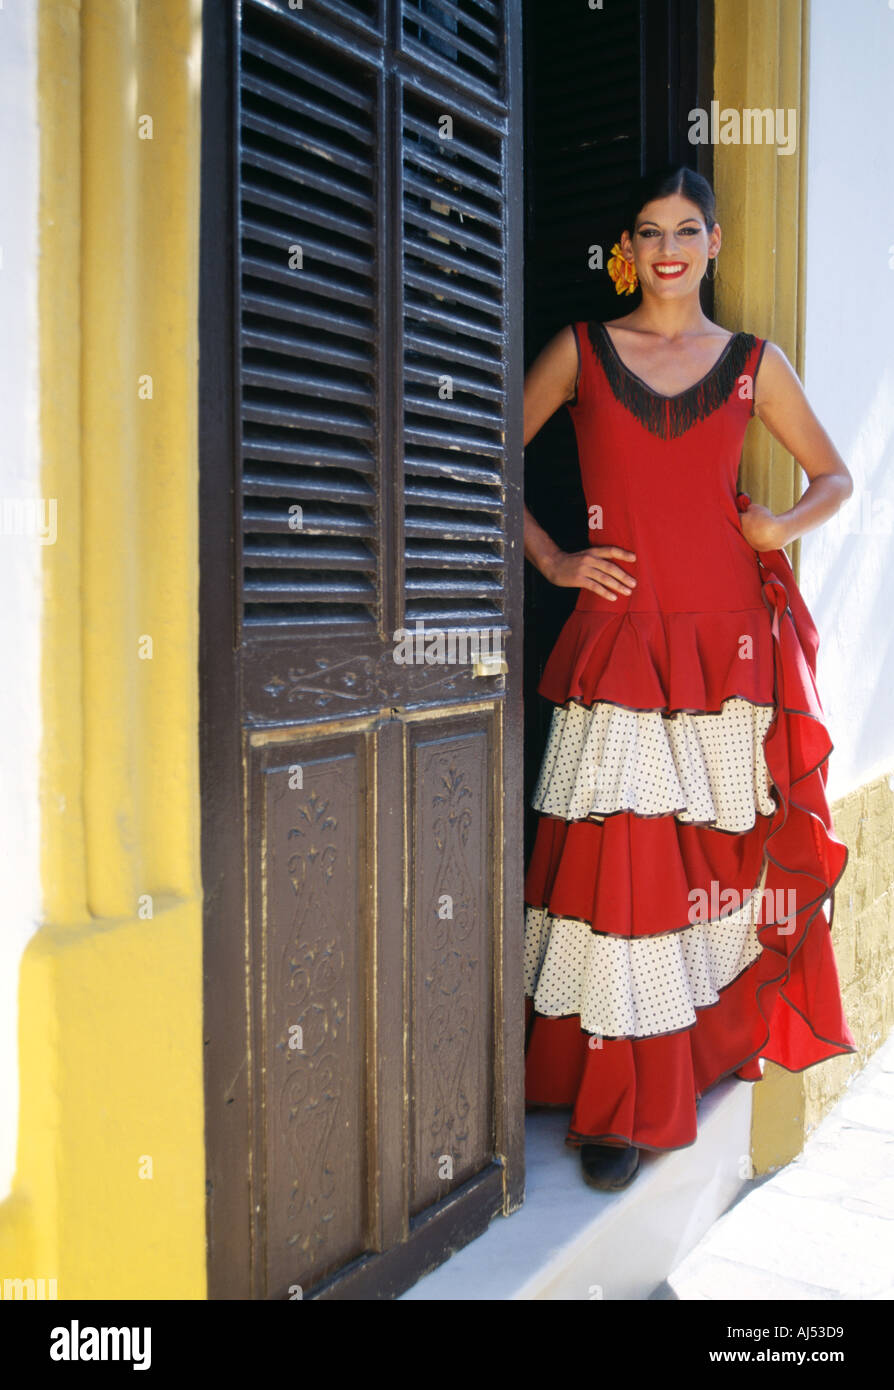 bf3960e00534 Spain Andalucia Spanish girl in traditional flamenco dress or costume  standing in the doorway of her